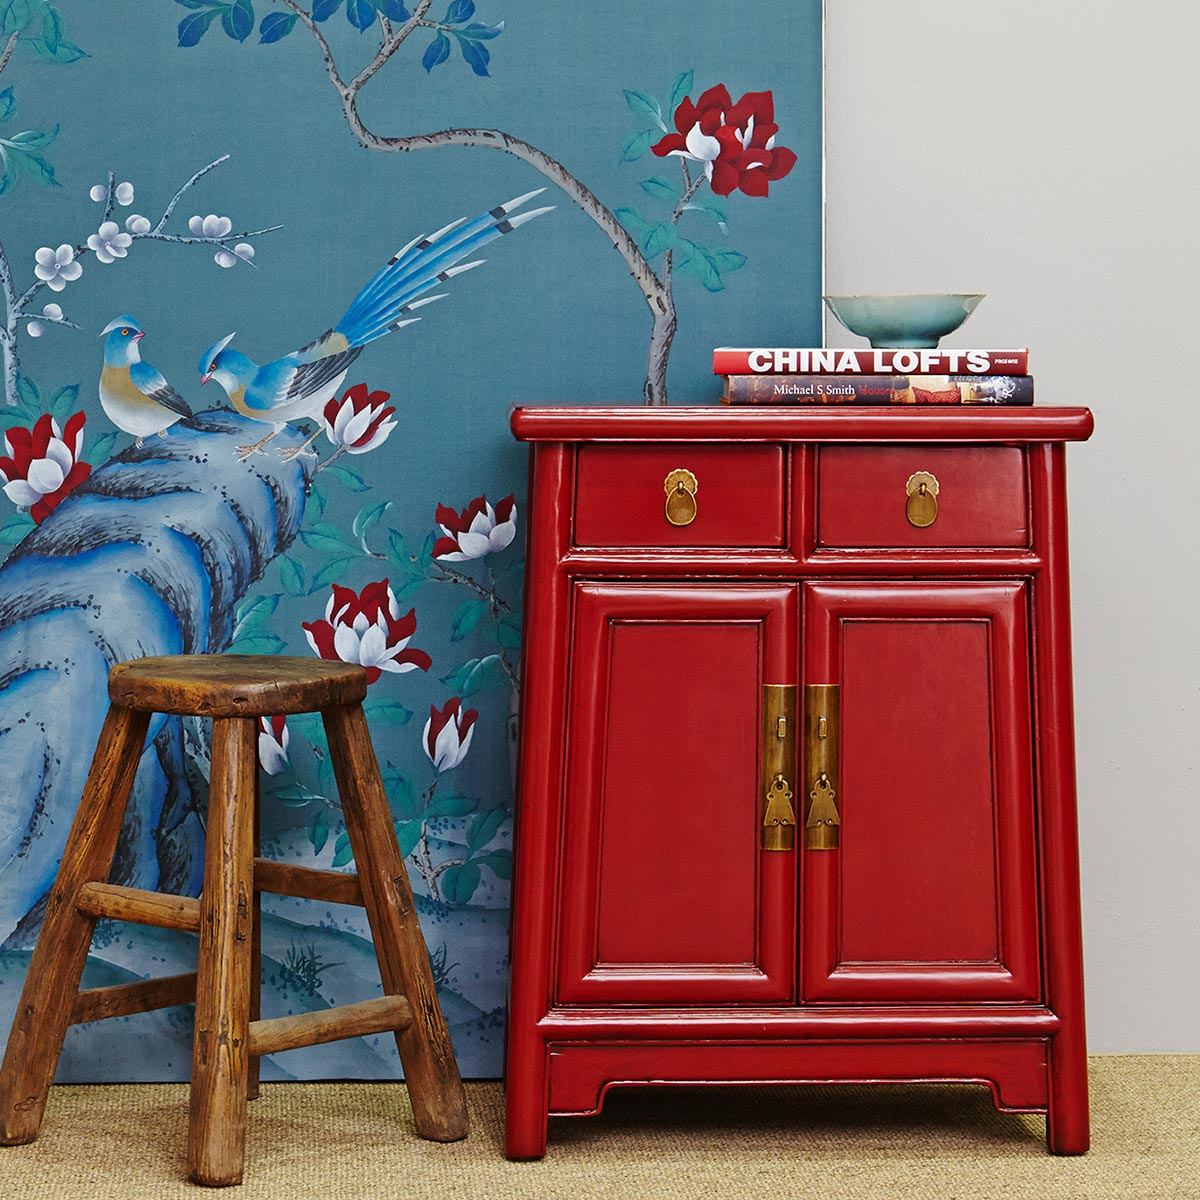 A wooden stool and red cabinet set against lovely blue wallpaper